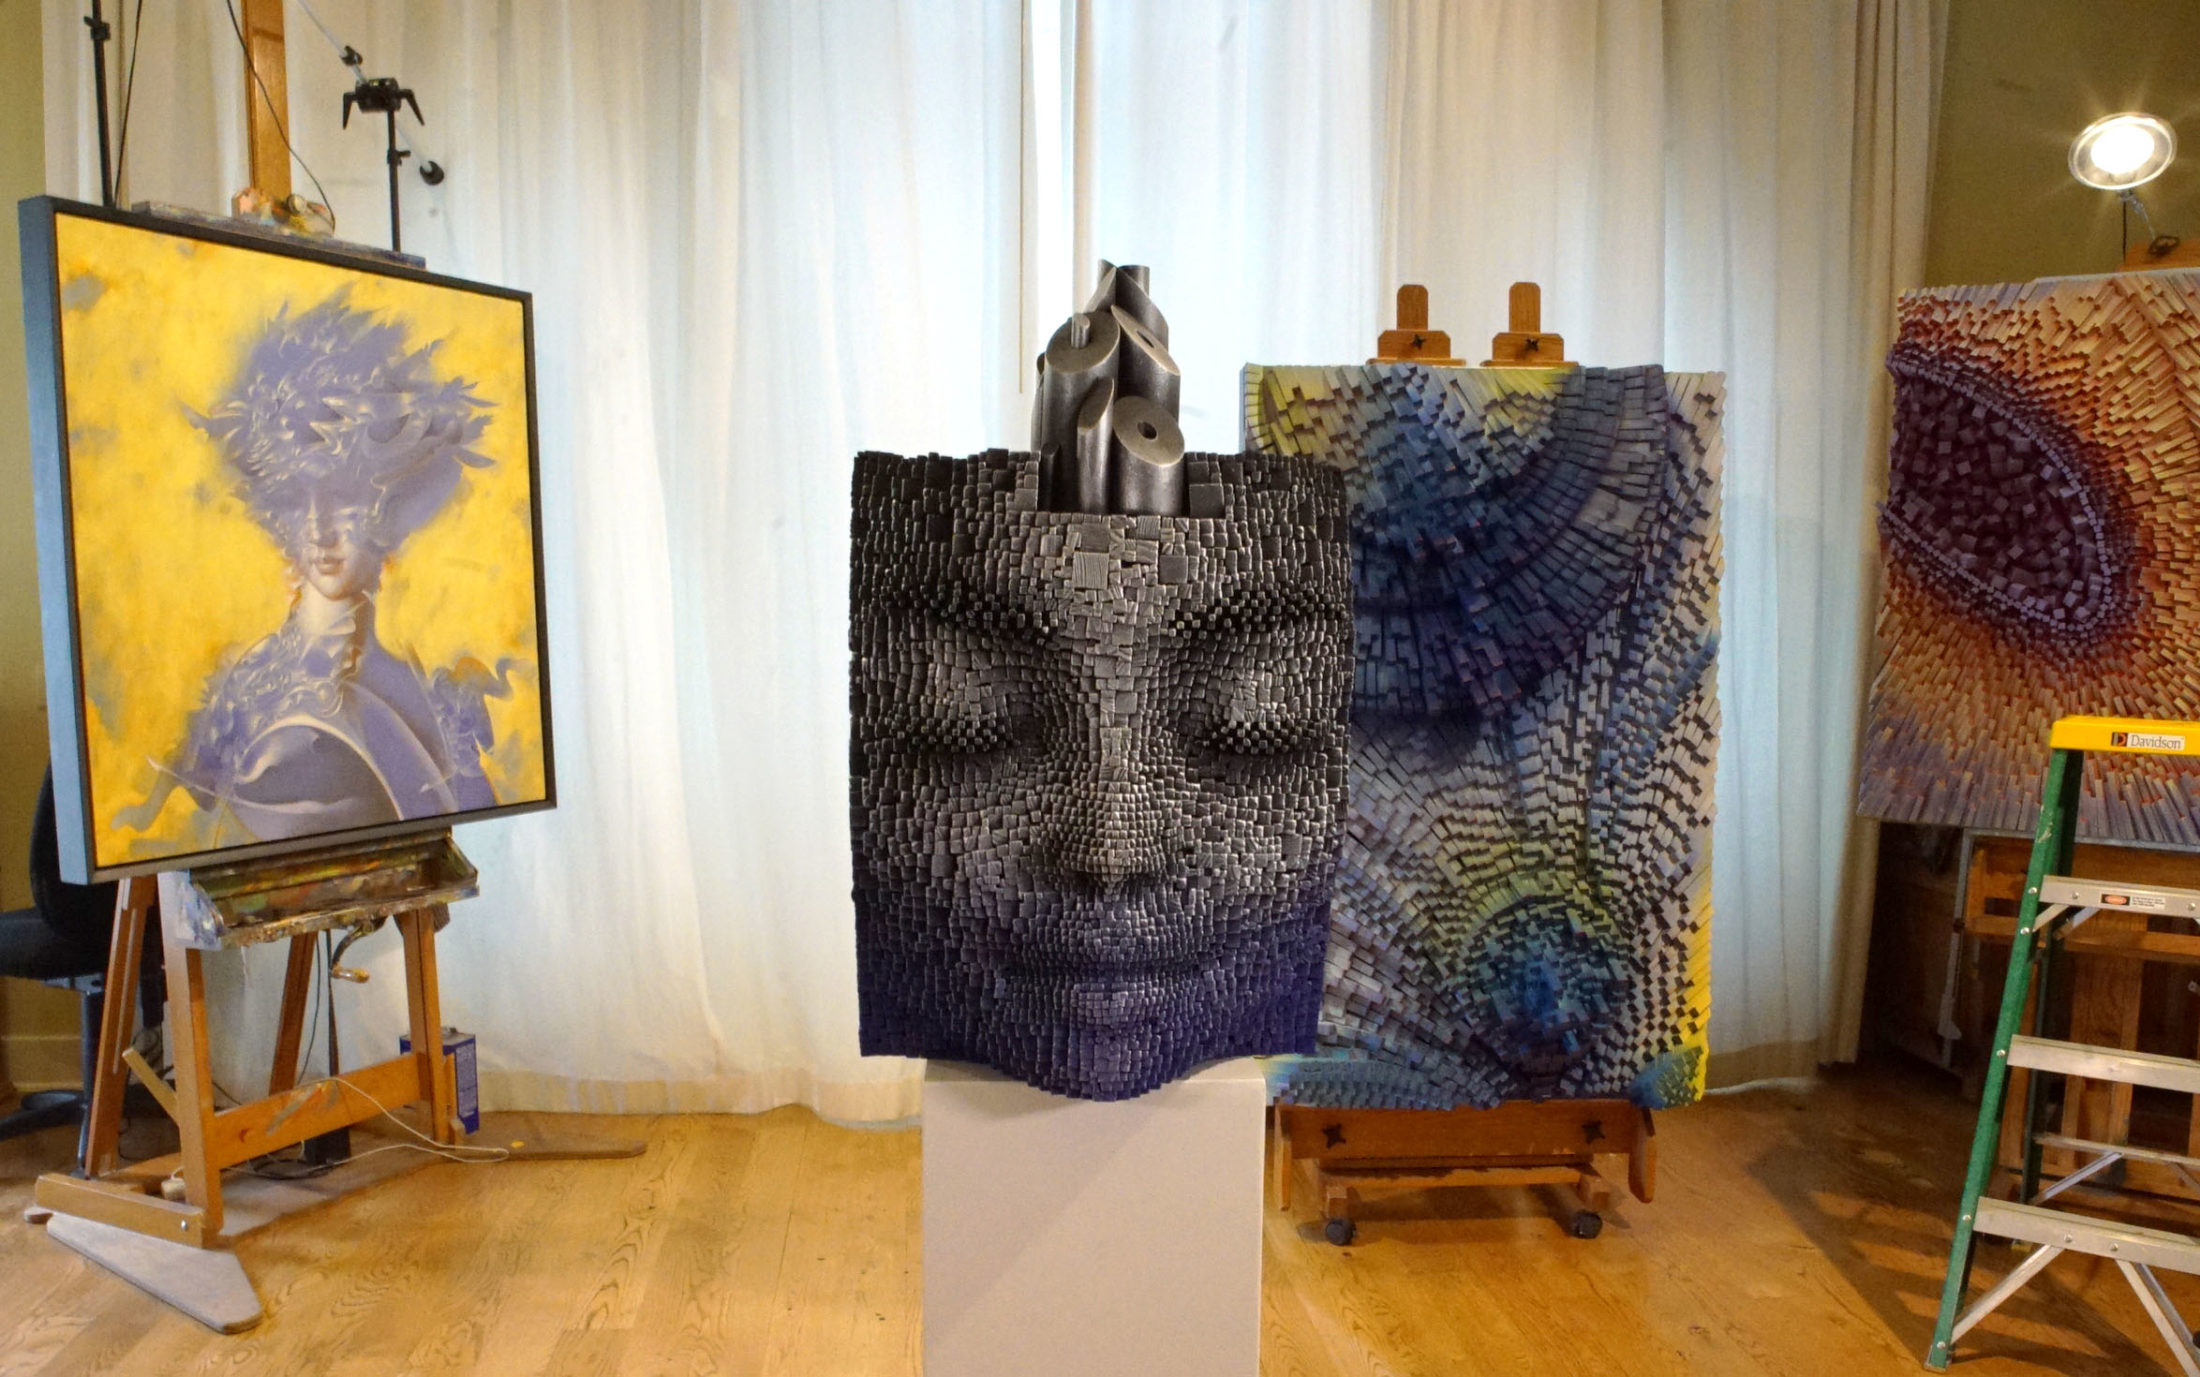 One of Bruvel's face sculptures next to the mixed media artist's other works. Photo by Joshua Barajas/PBS NewsHour